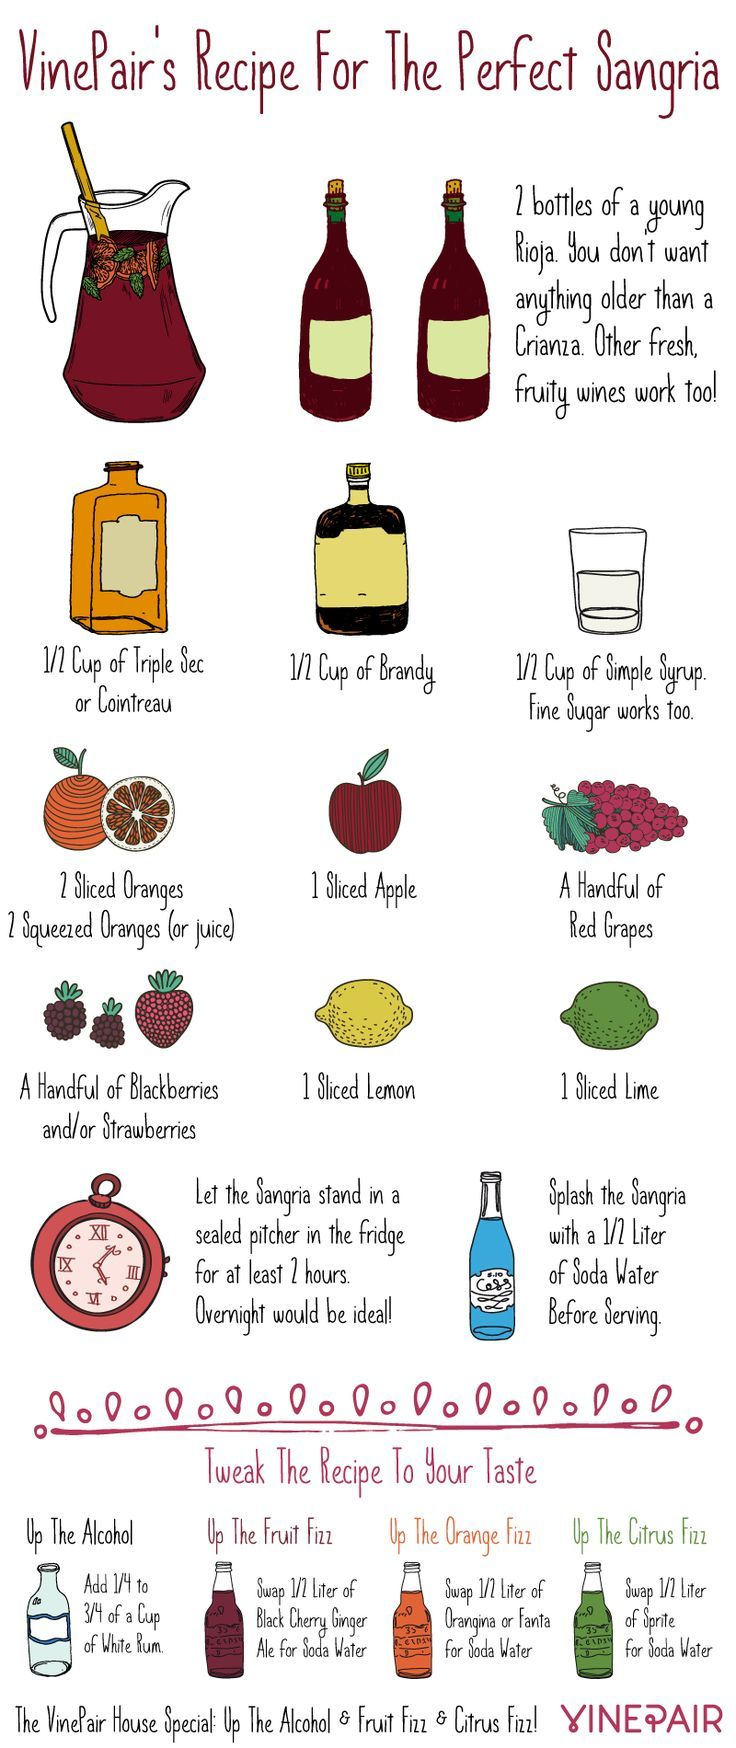 Sangria is a great way to enjoy wine on a warm day. It's especially awesome for serving a group. Missouri Chambourcin and St. Vincent are wonderful options for making sangria.